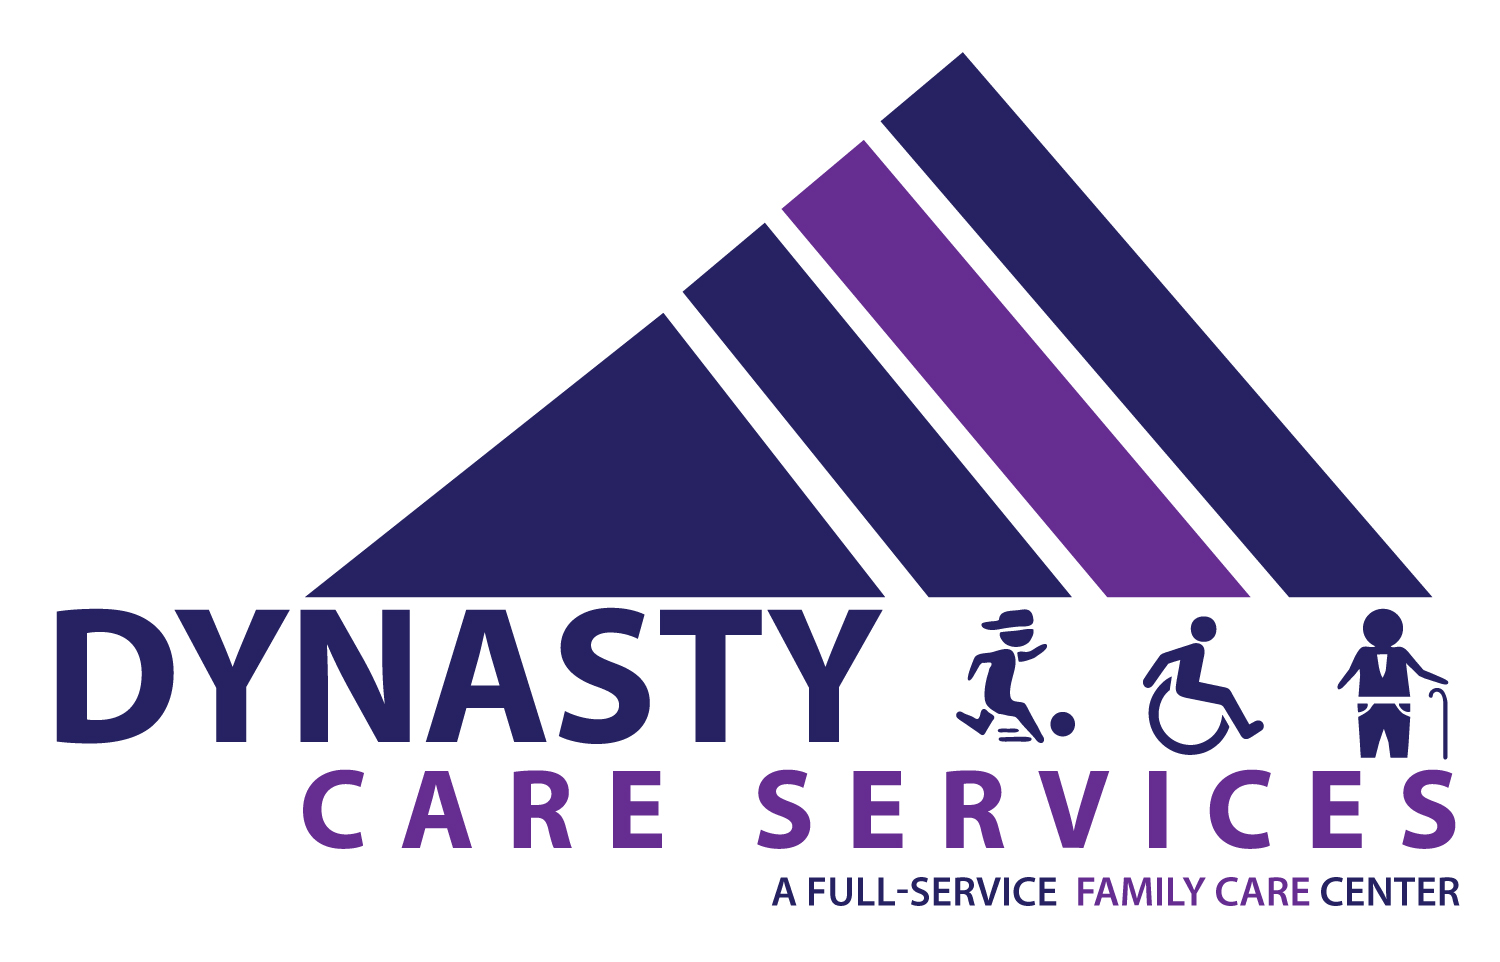 Dynasty Care Services